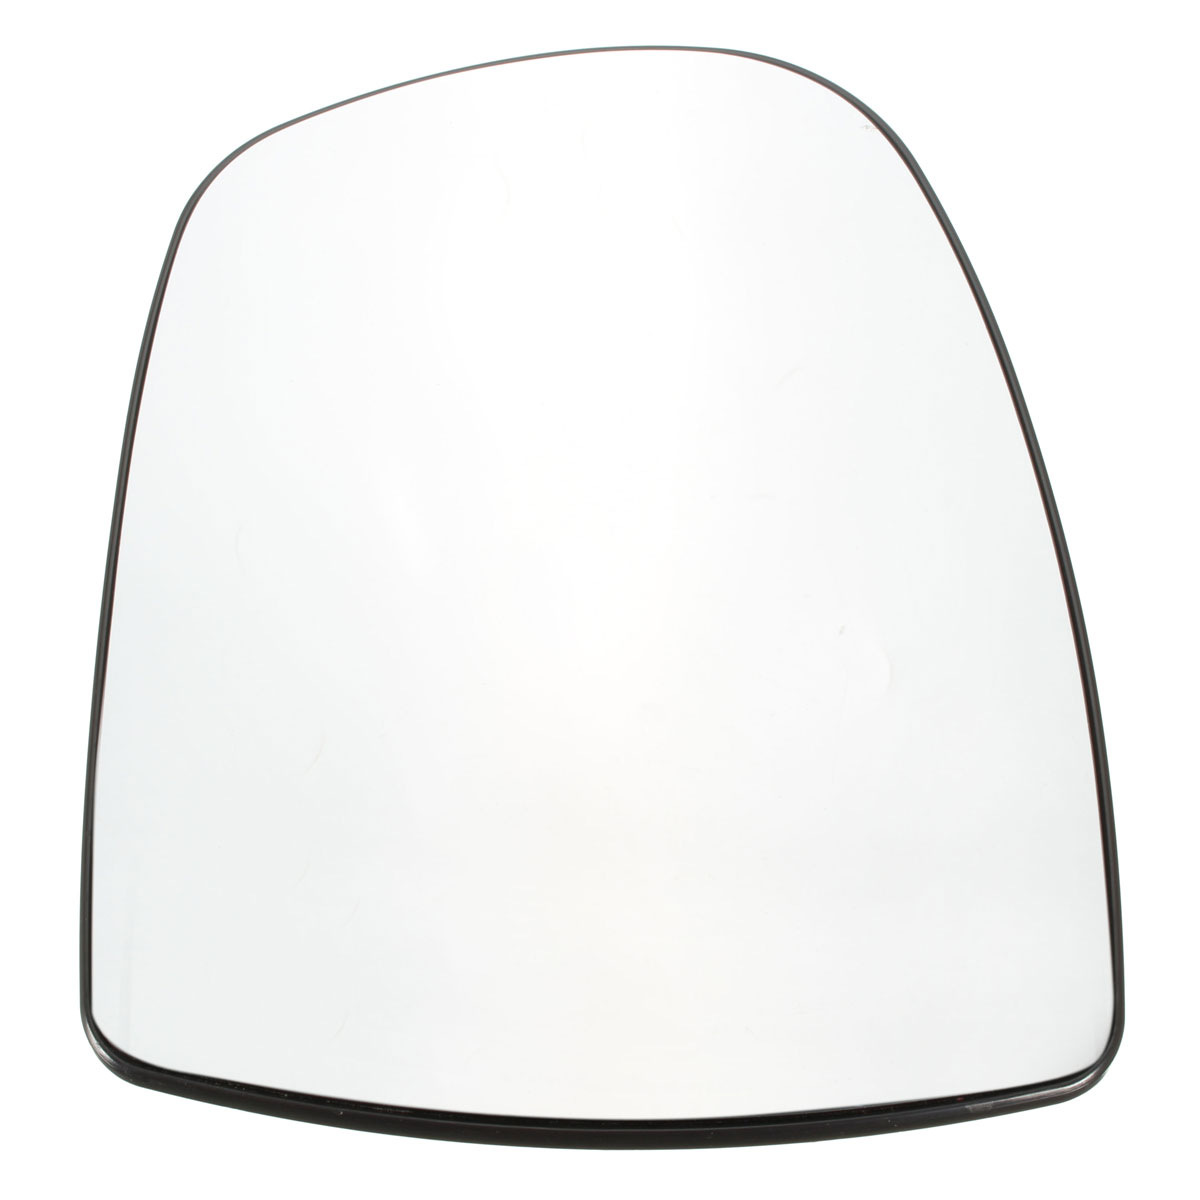 Right side for Vauxhall Vivaro 2001-2014 Wide Angle wing door mirror glass